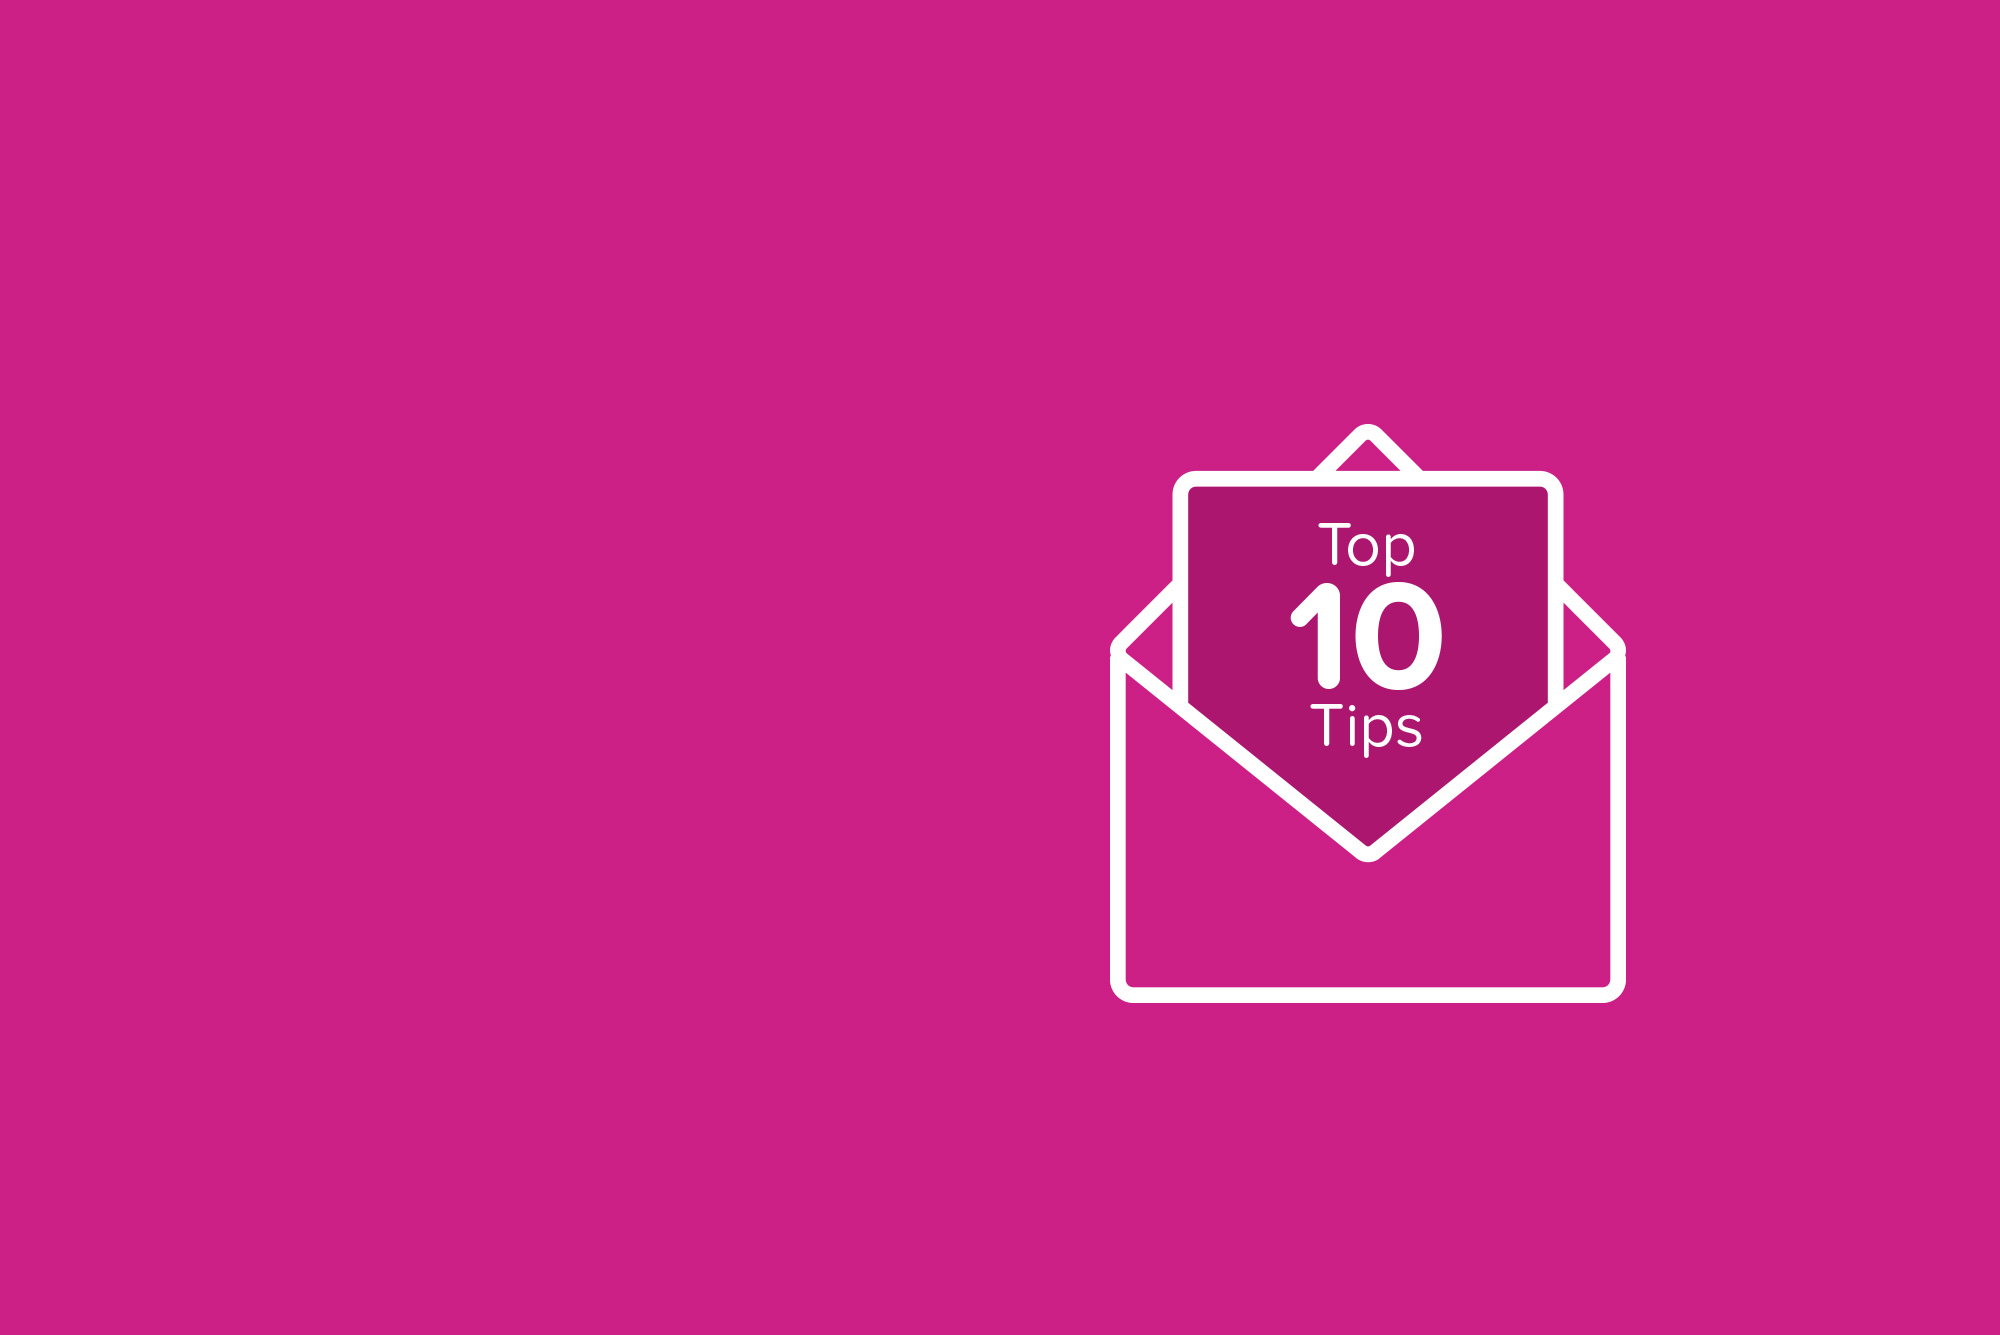 Email icon with top 10 tips text on pink background - Email marketing tips